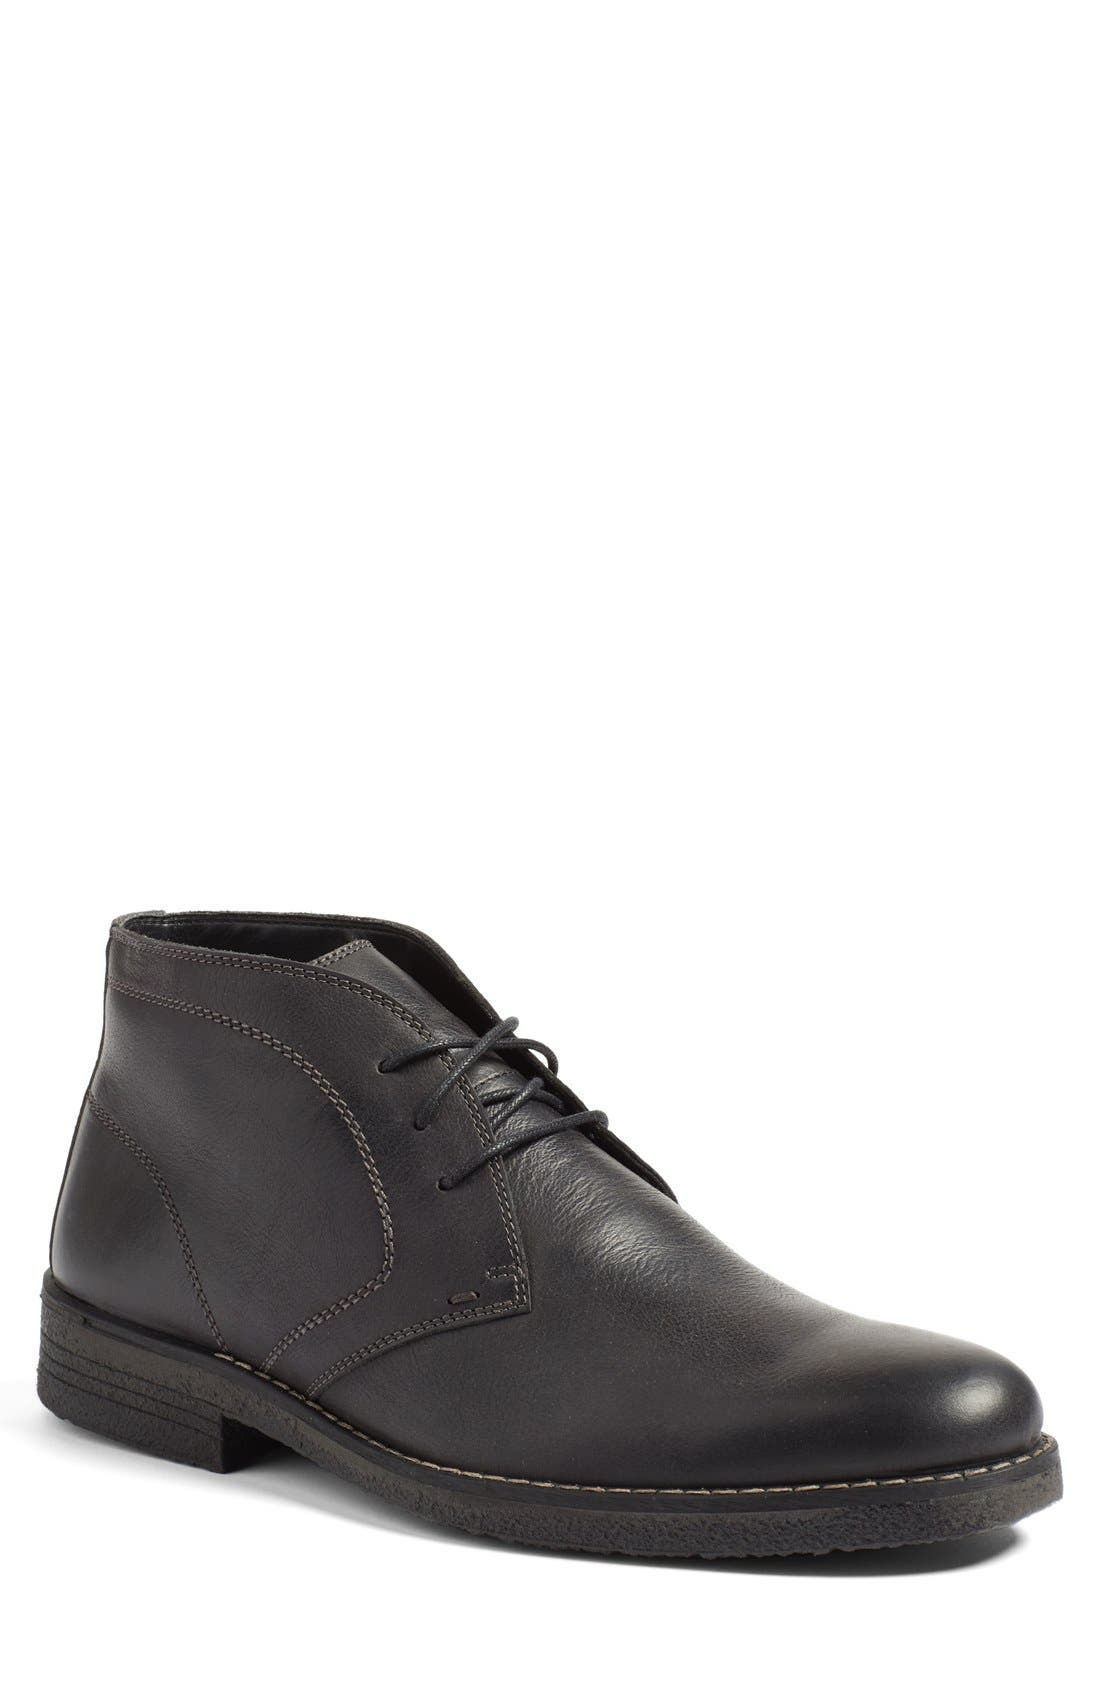 'Tyler' Chukka Boot,                             Main thumbnail 1, color,